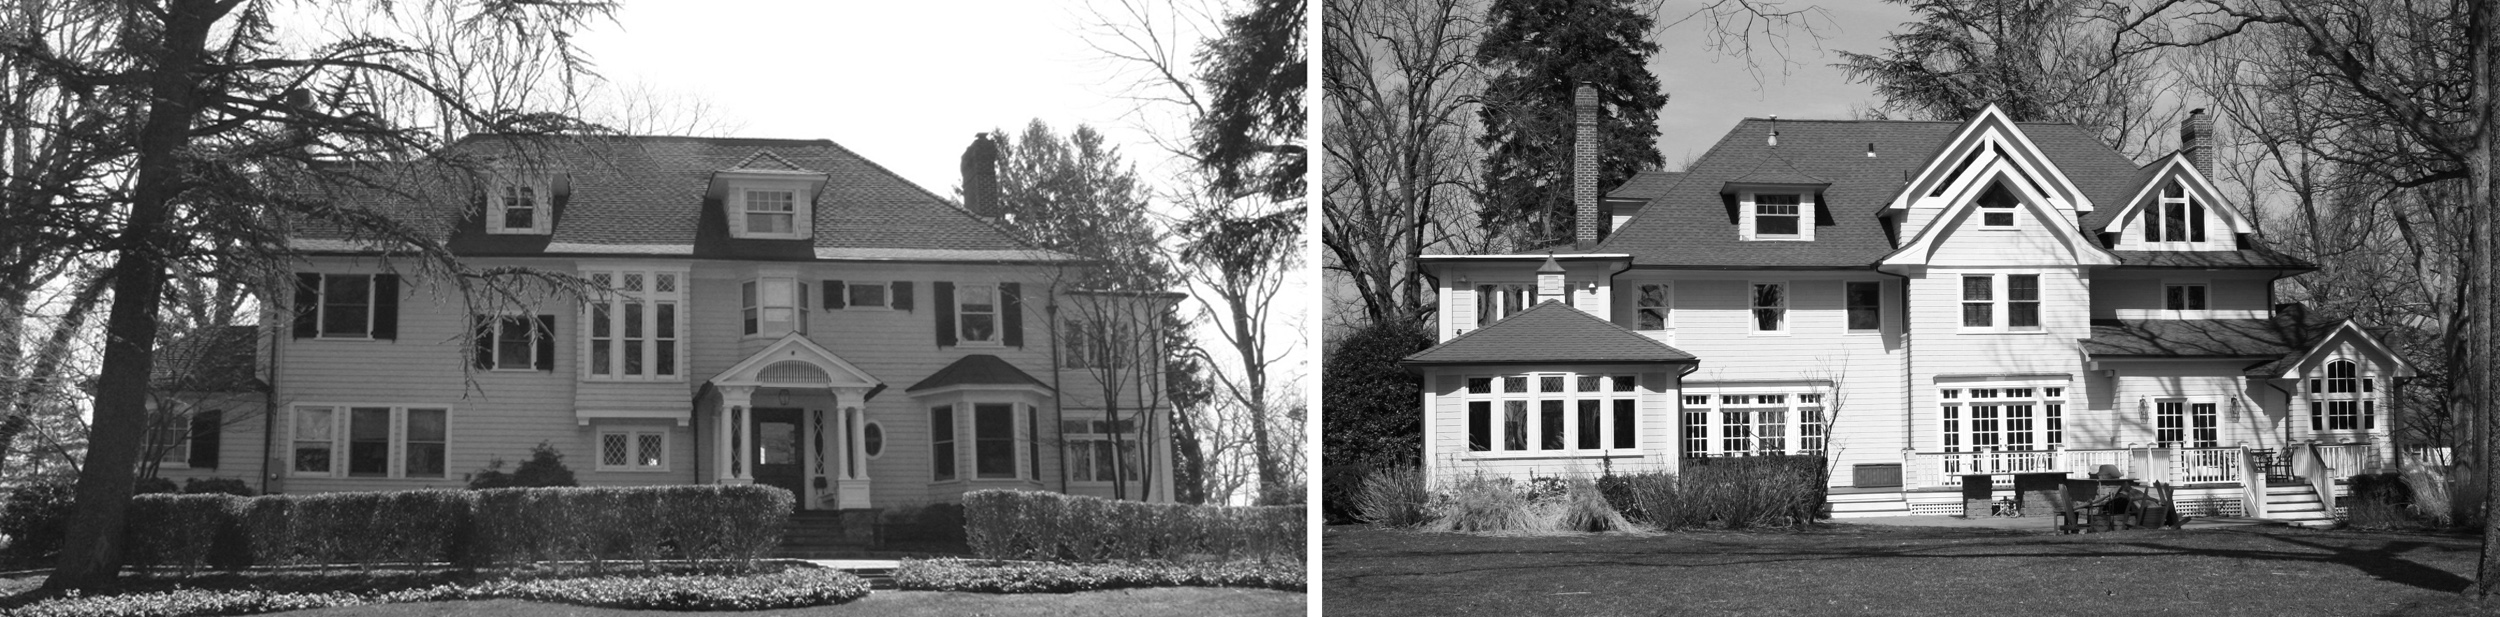 The original house, front and back prior to demolition.